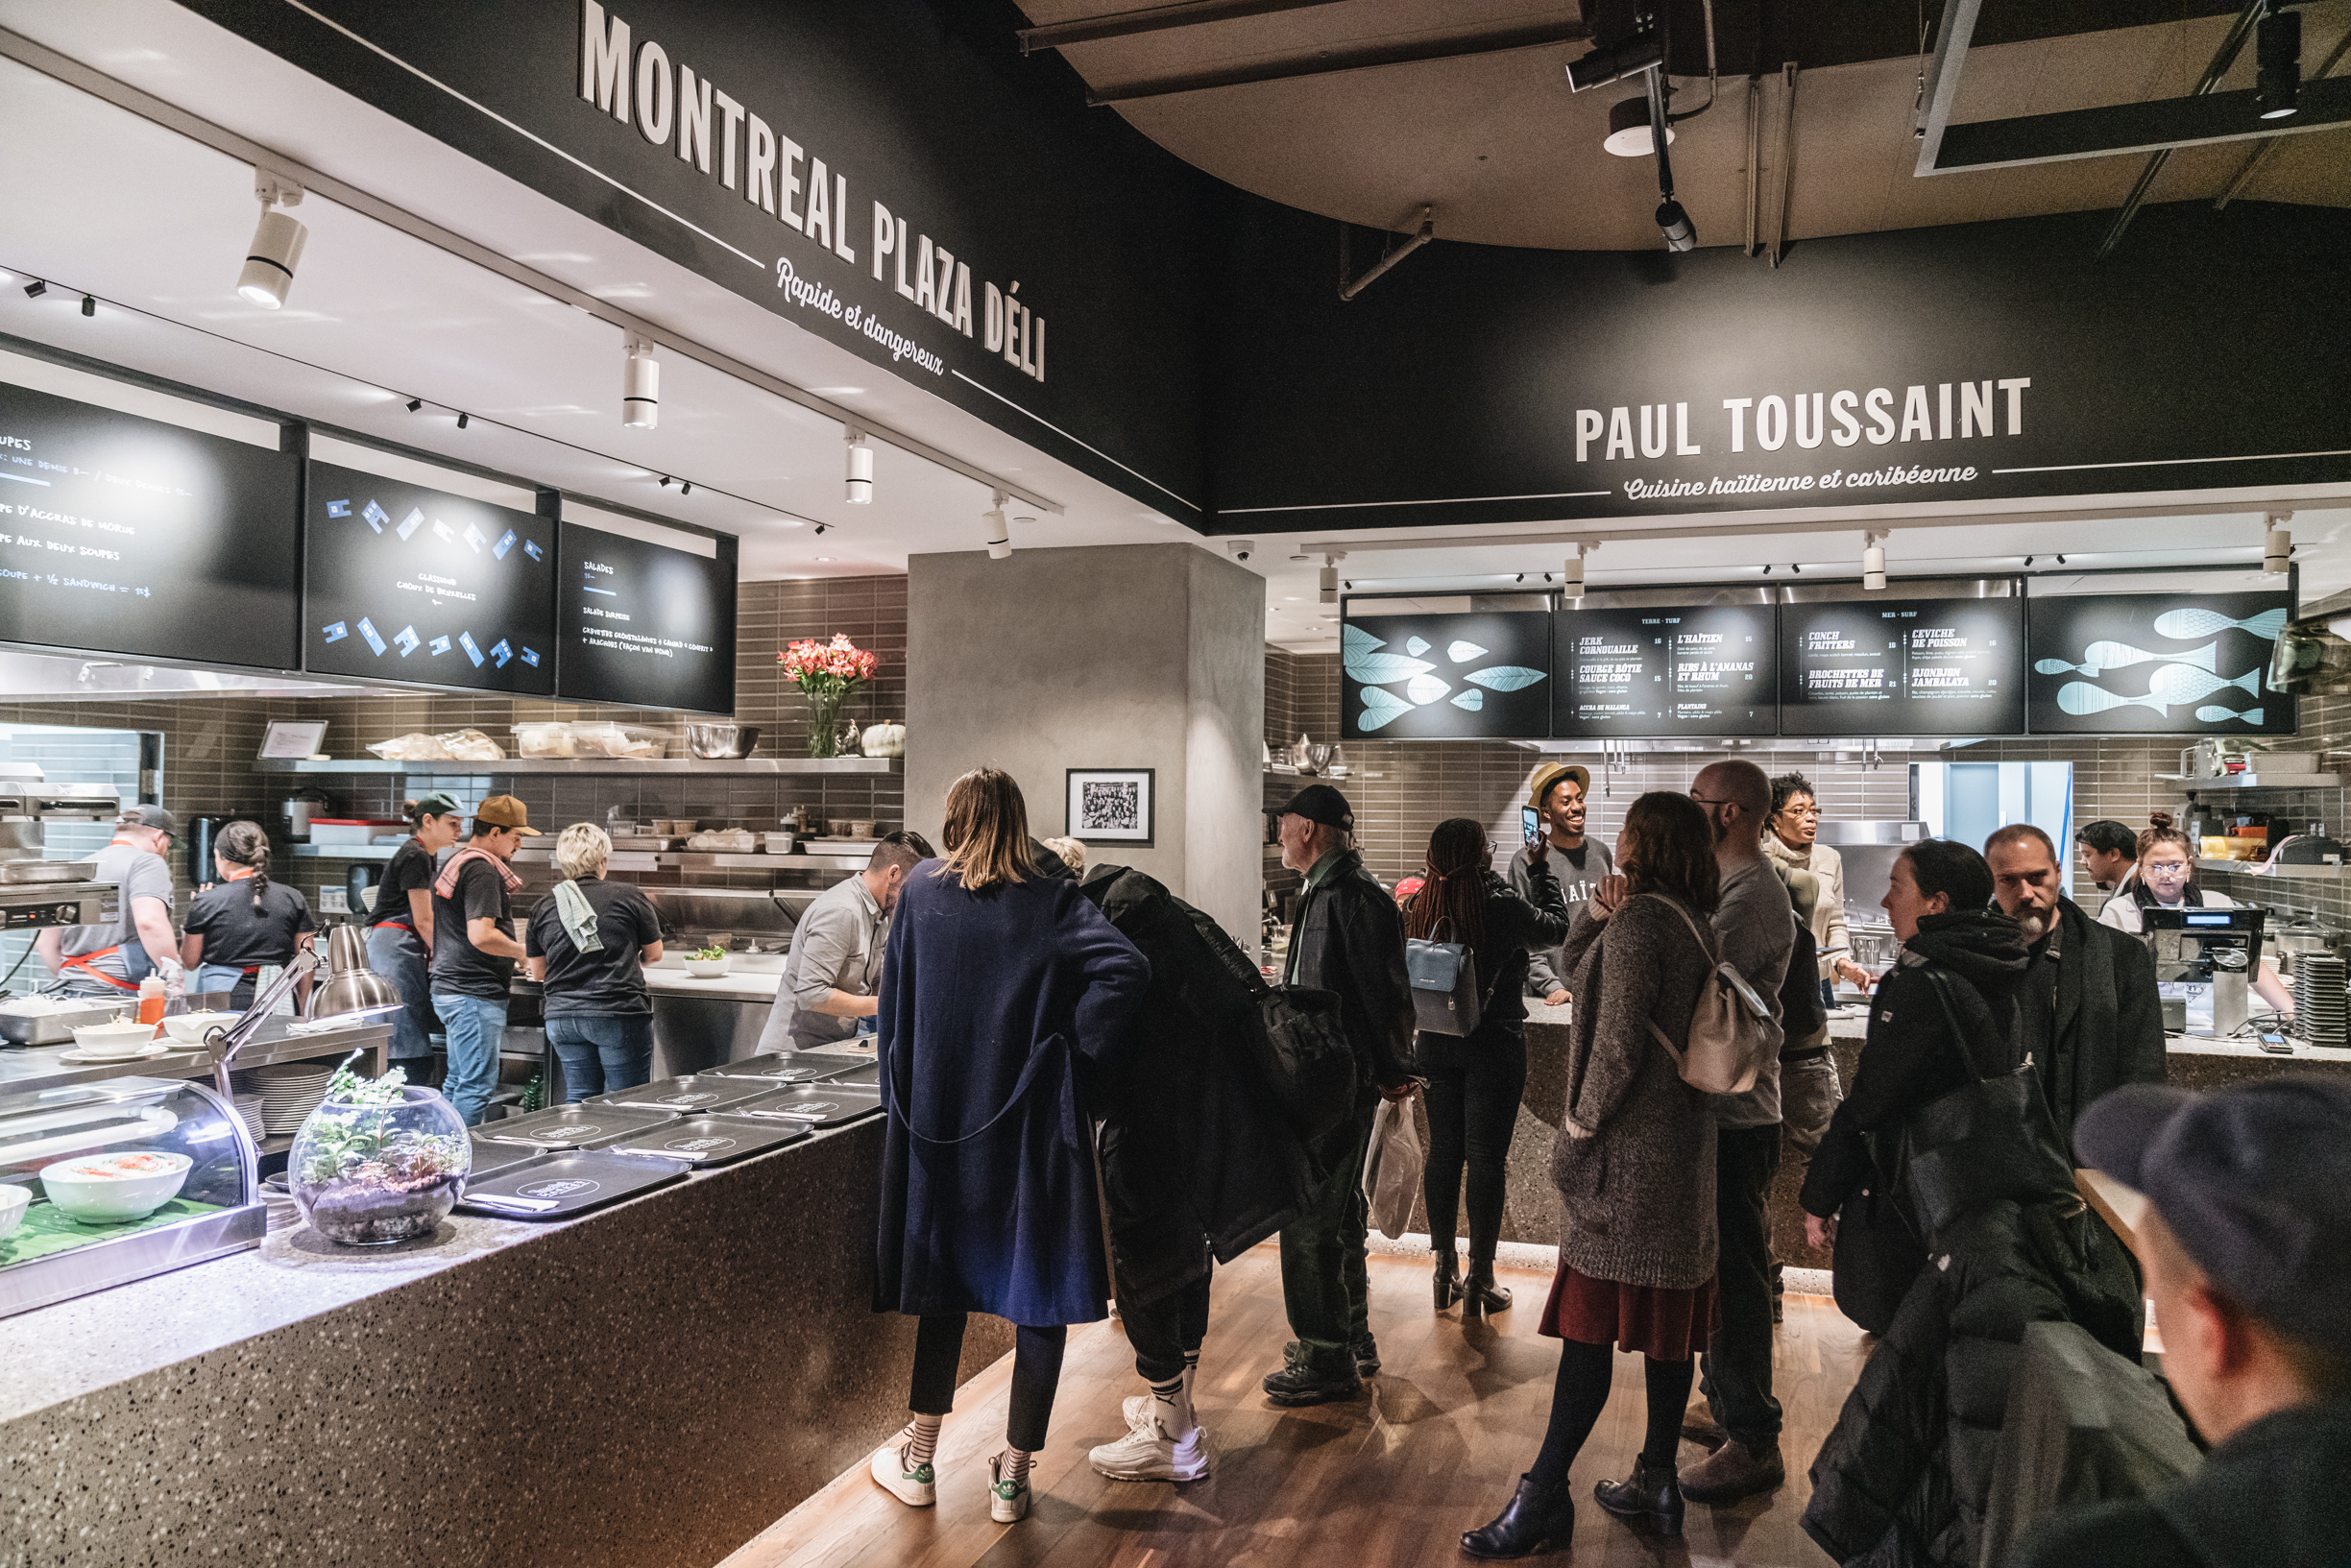 Your guide to the food and drink at Time Out Market Montréal – and how to order